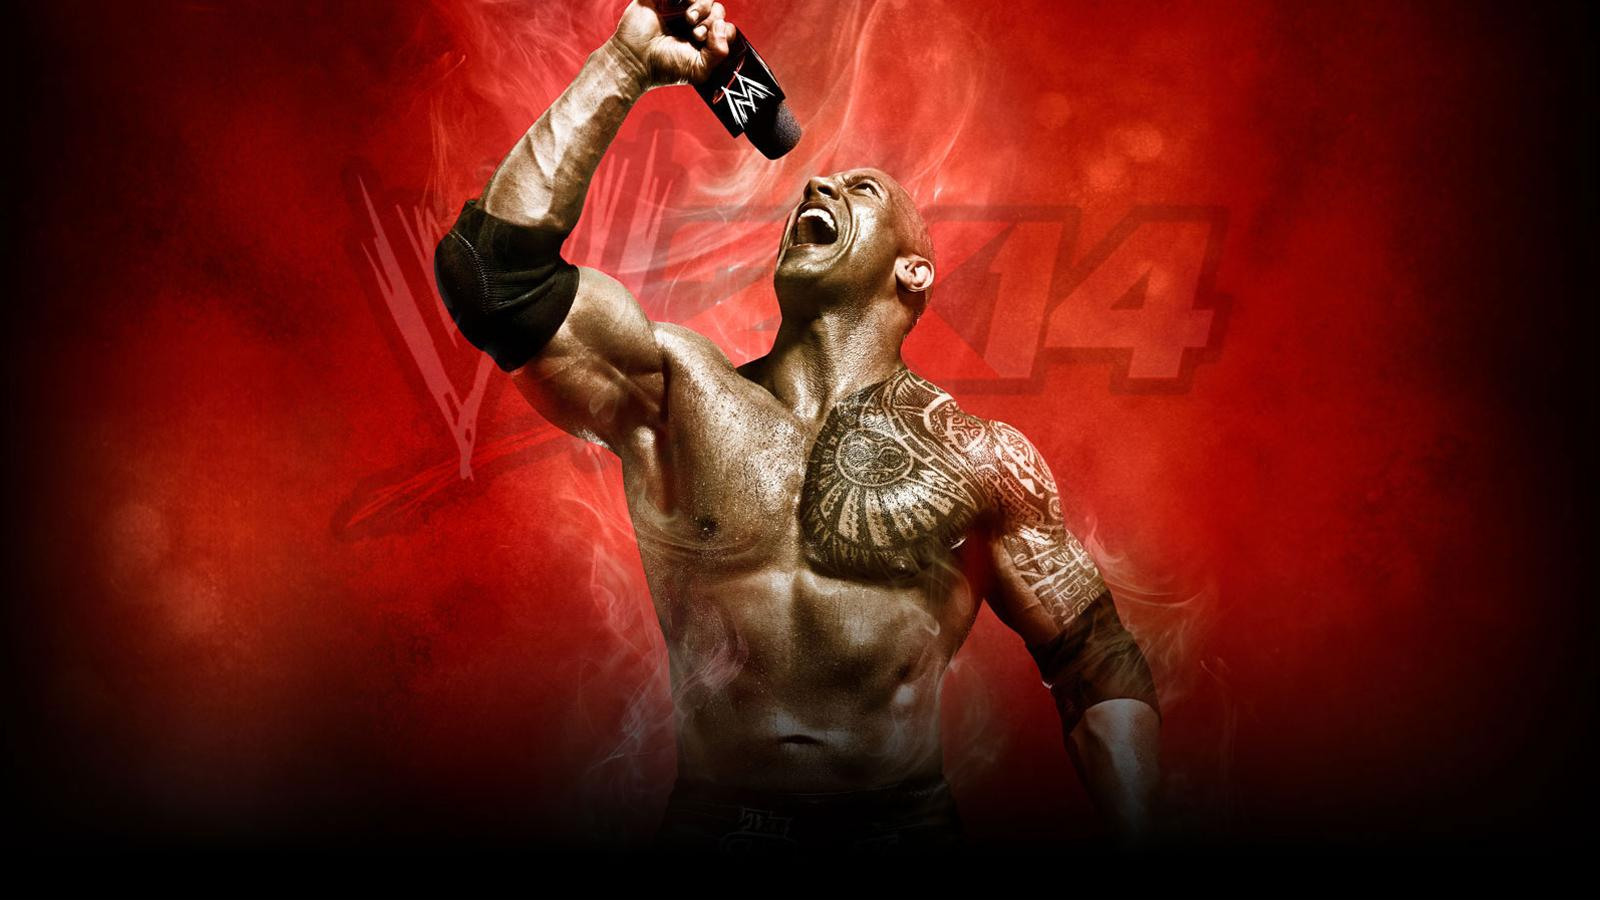 WWE2K14 Wallpaper Rock